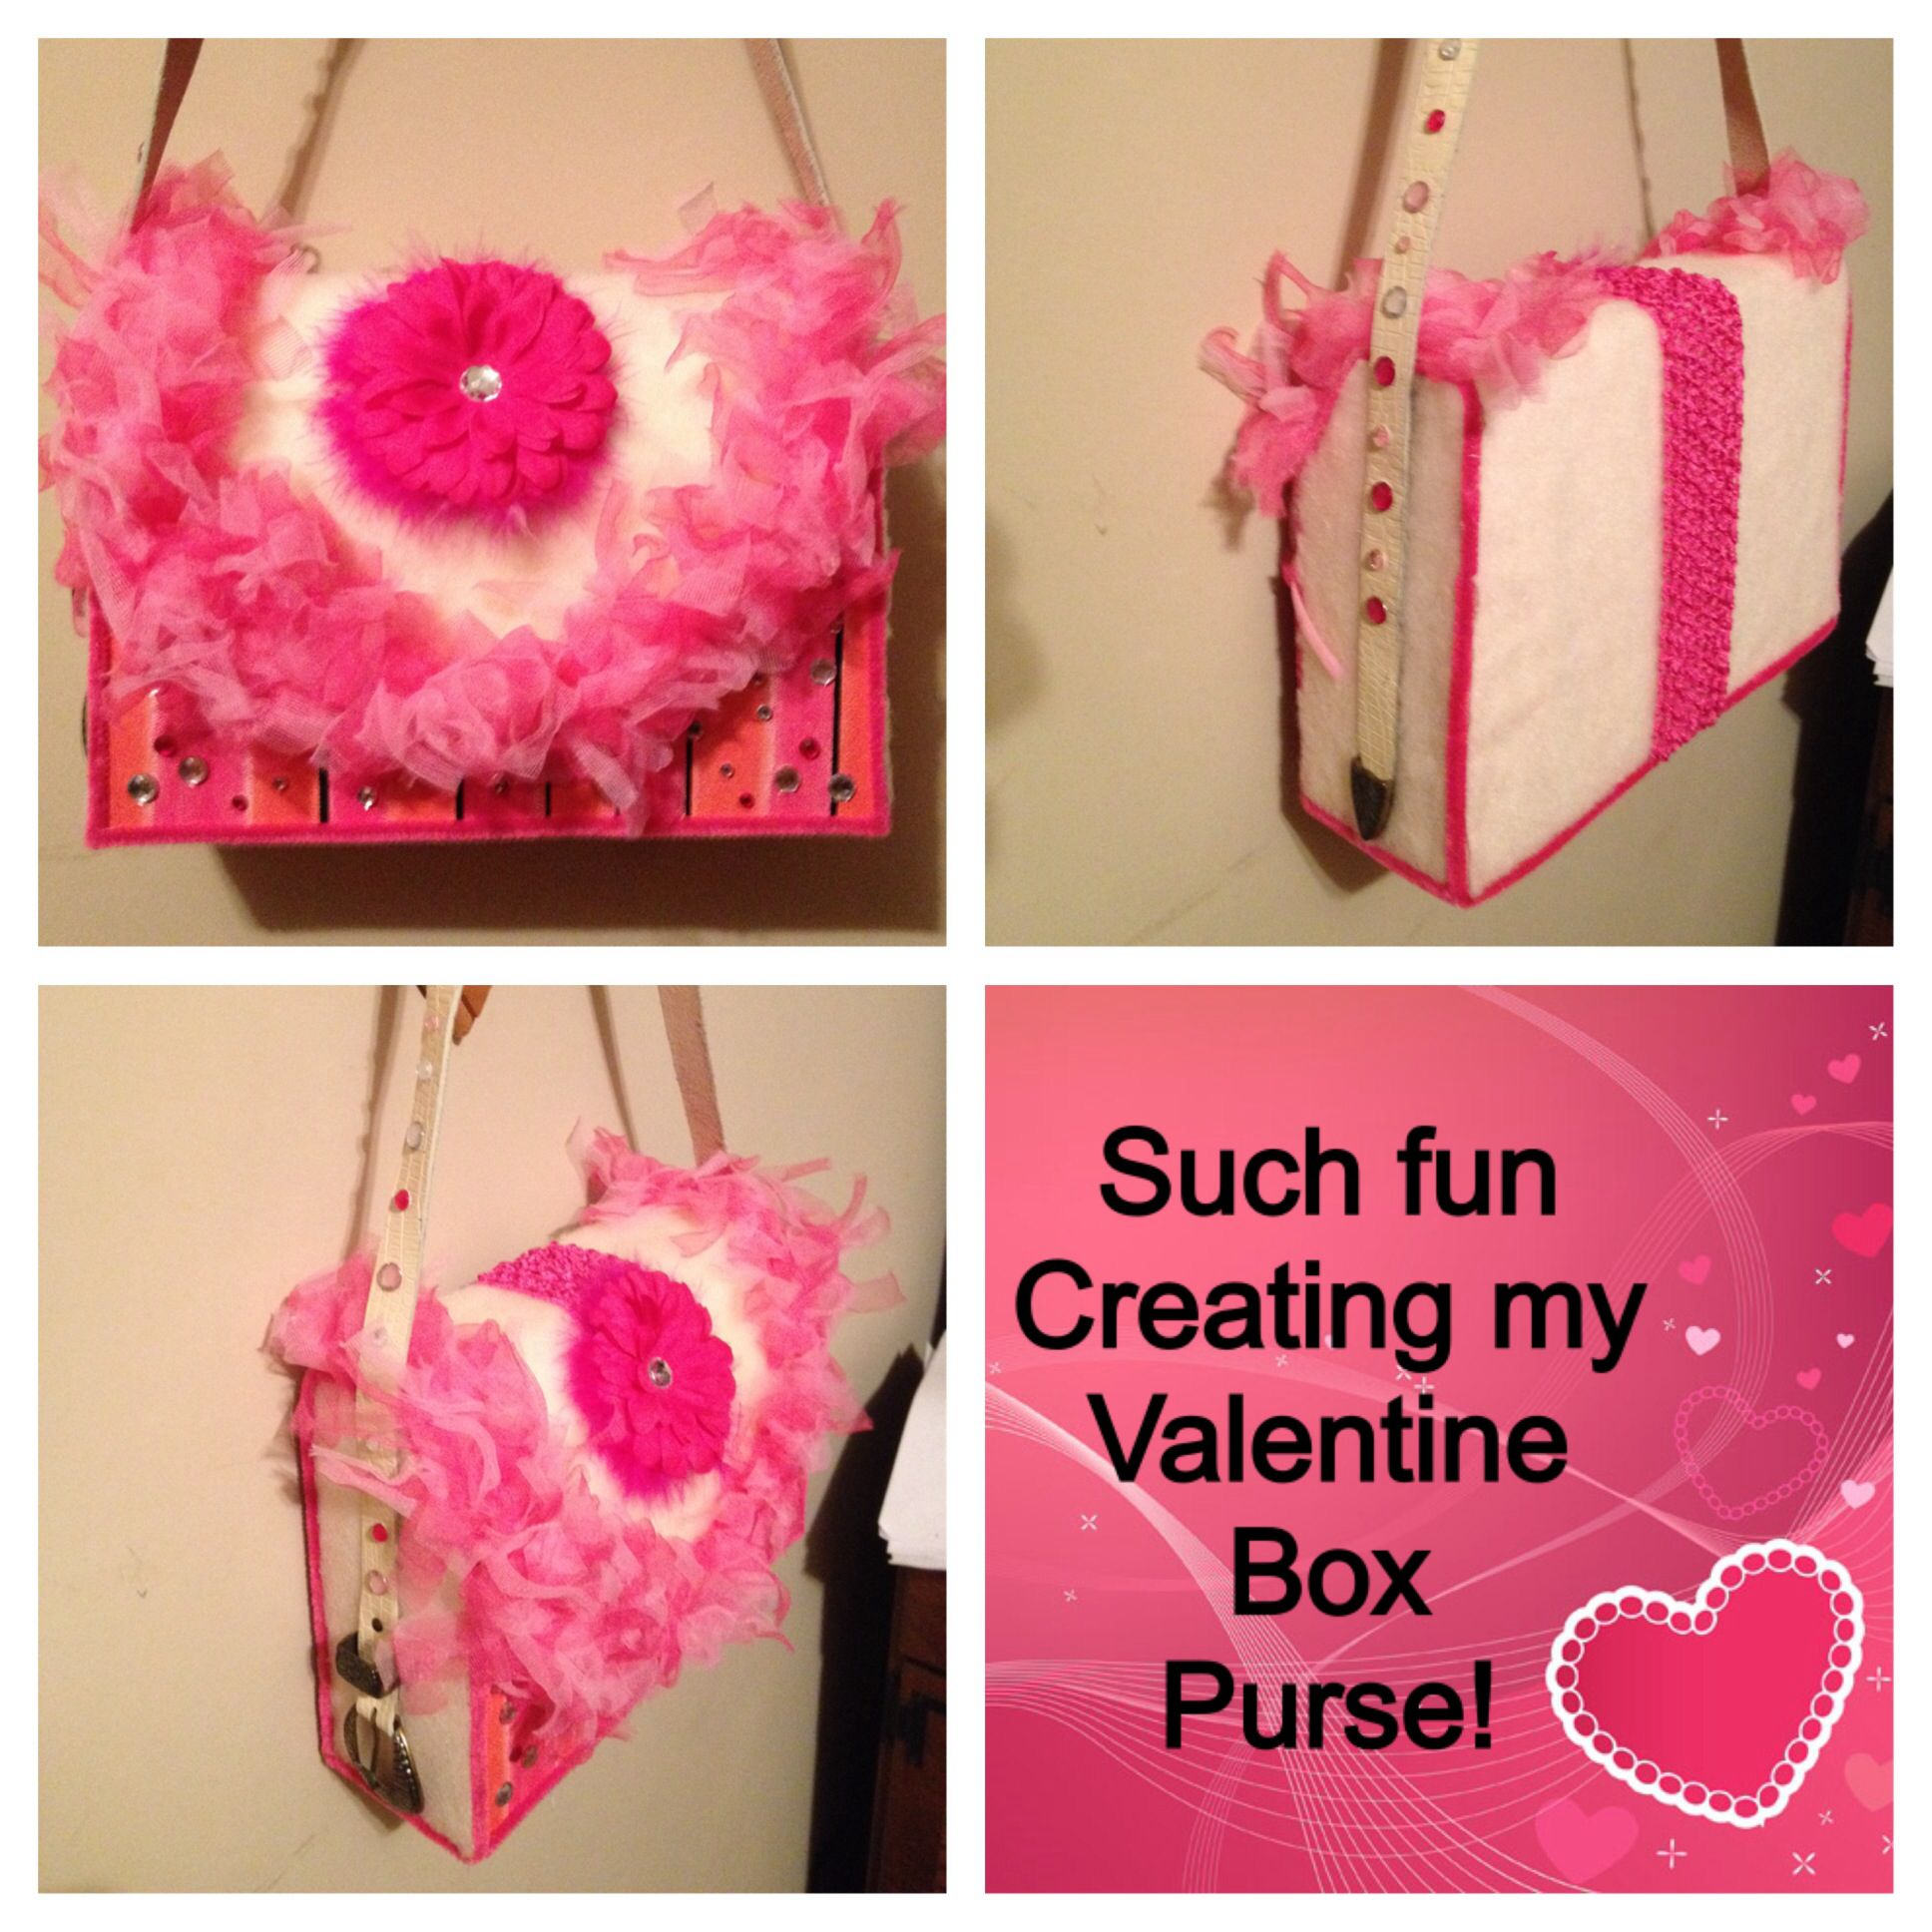 Valentine's box, purse. Recycled, repurposed, reused! Old card box, old plush felt from long ago craft projects, my Mama's old belt. Add to that some Dollar Store finds: a little girl's feather boa, a baby's flower headband, pipe cleaners, a little bling & hot glue!!